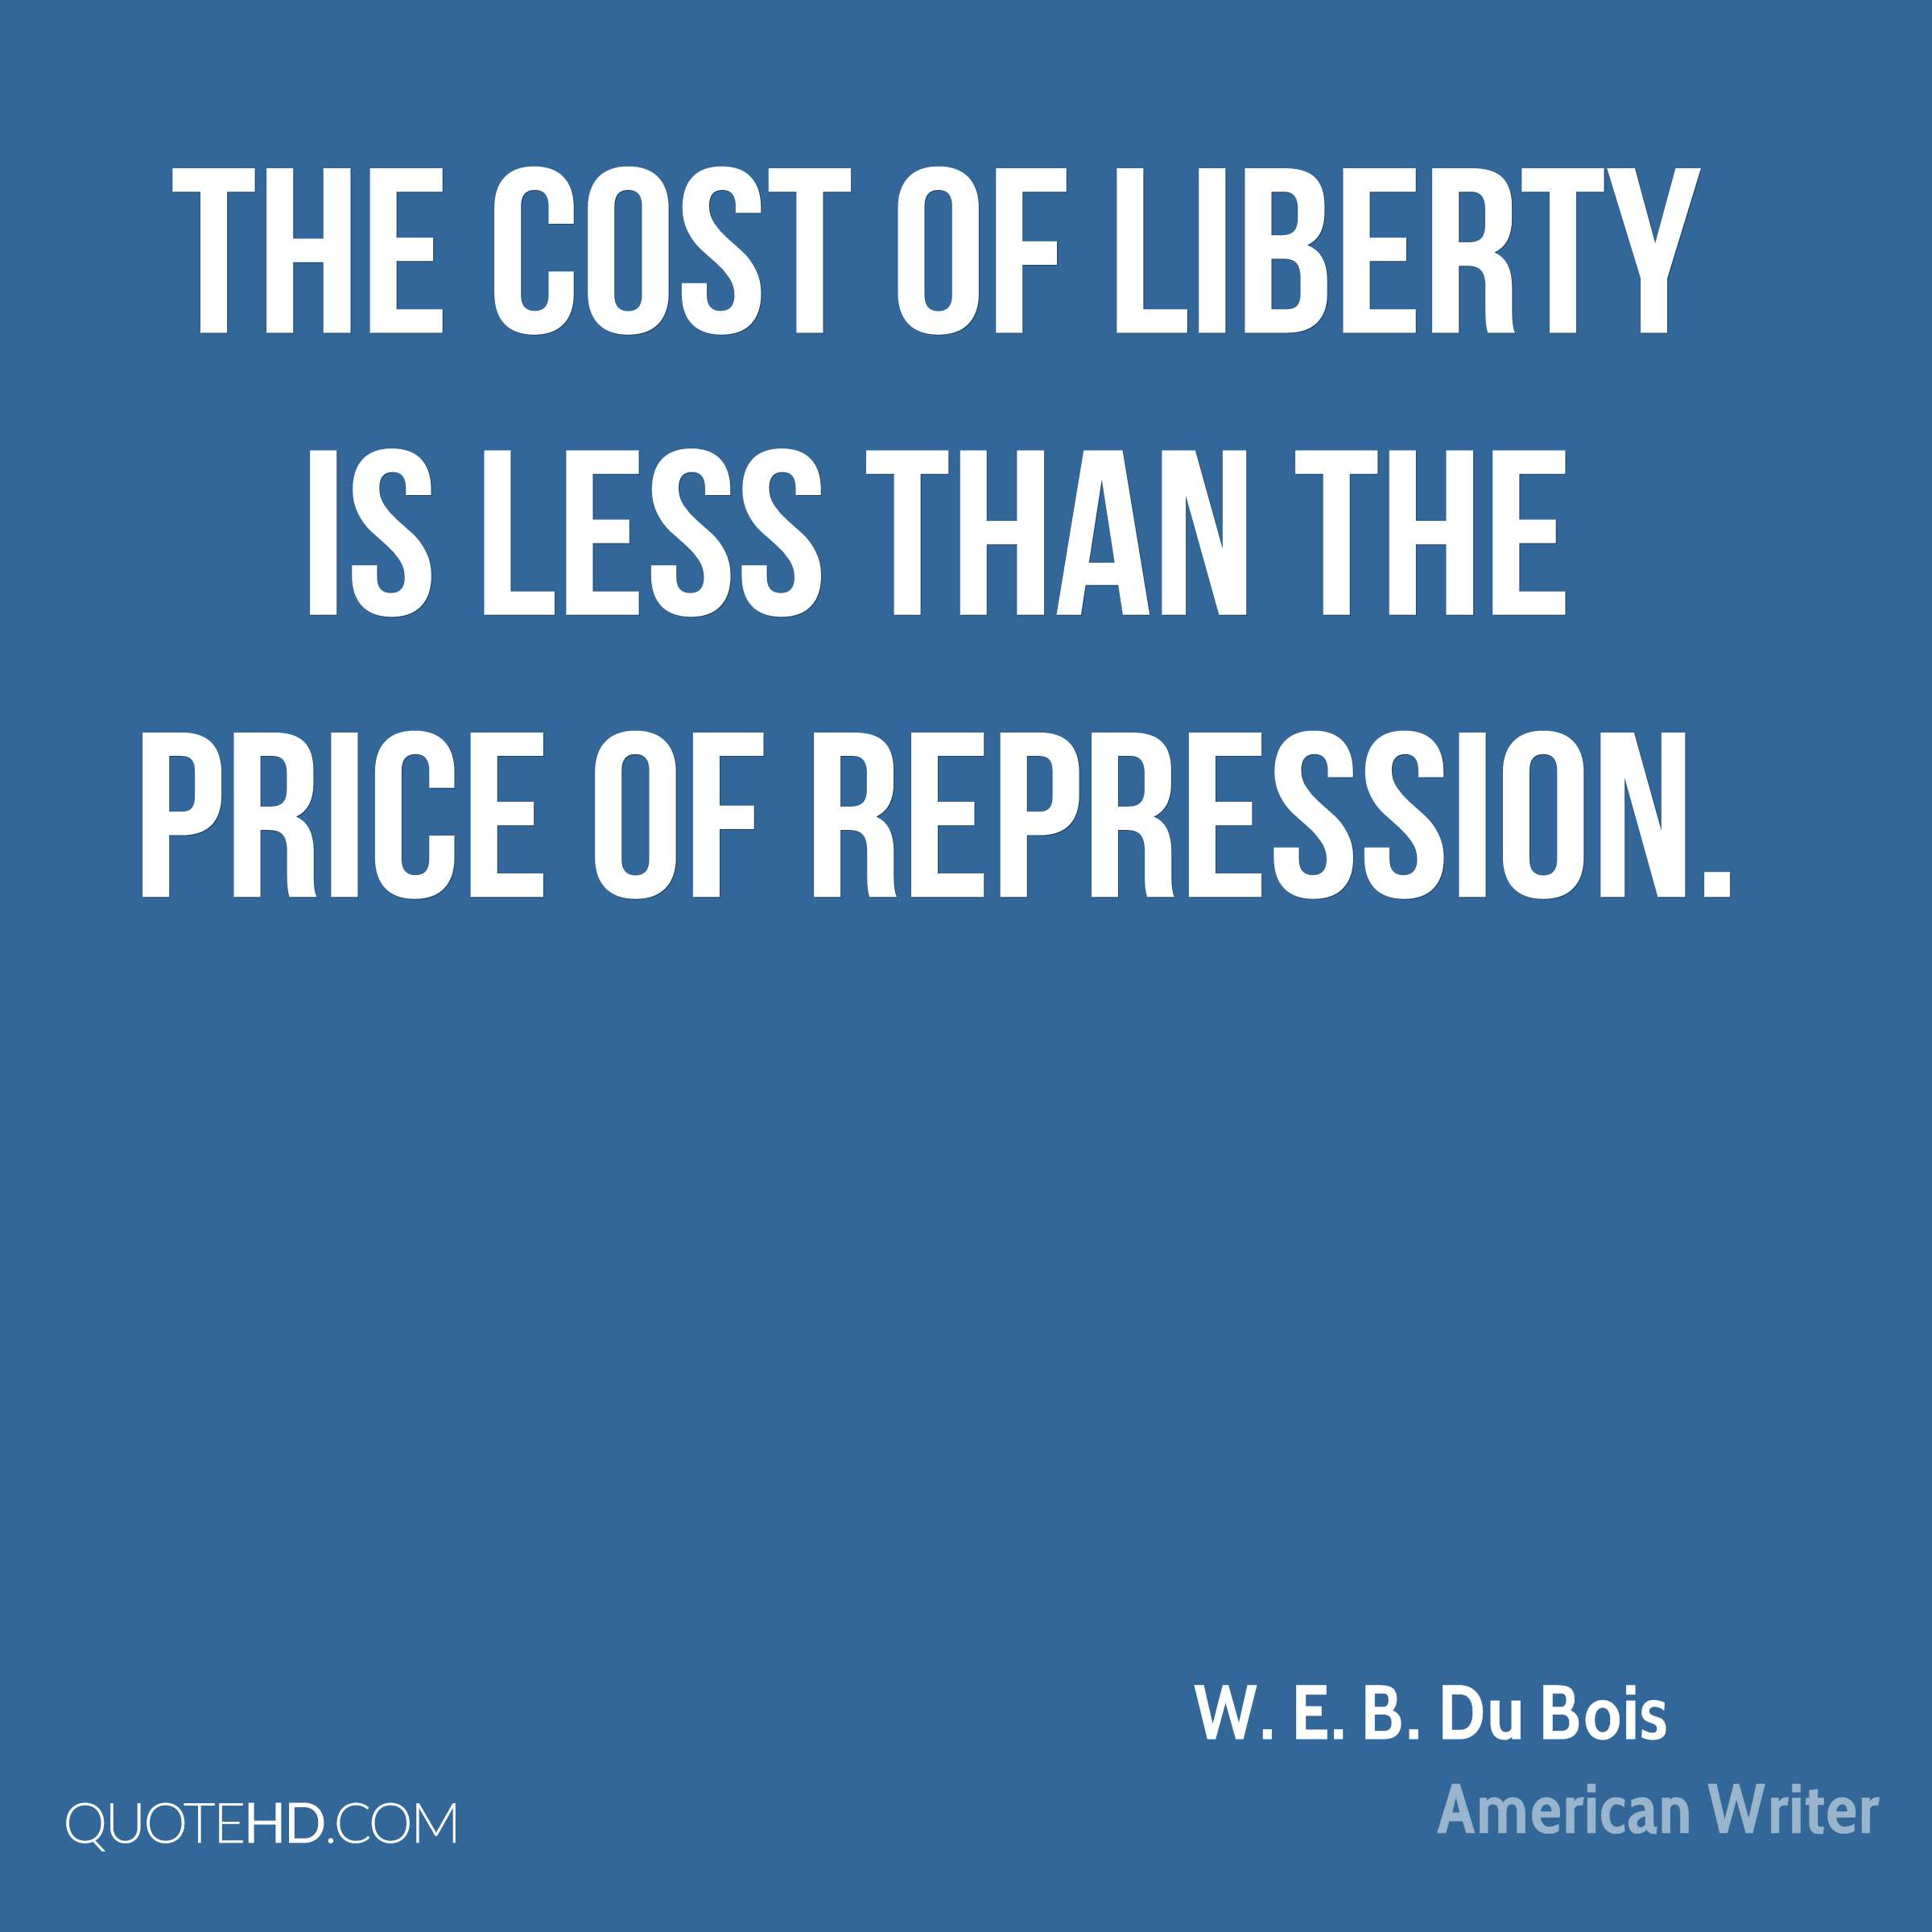 The cost of liberty is less than the price of repression.